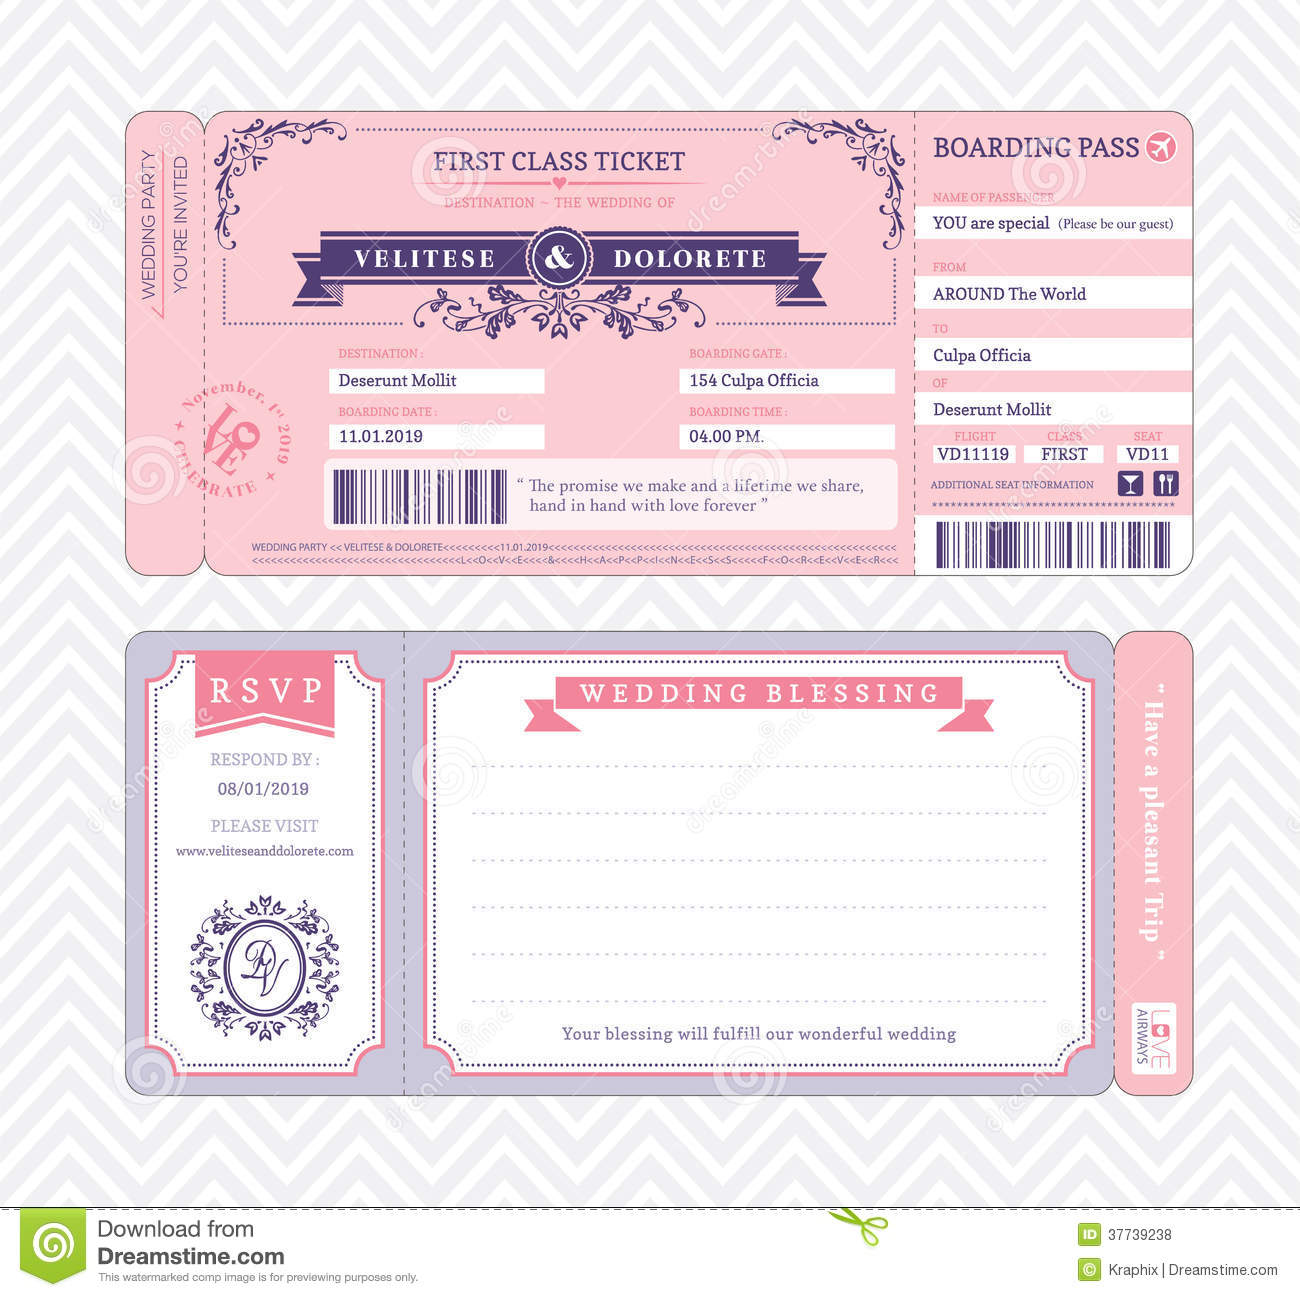 Boarding Pass Wedding Invitation Template  Invitations Templates Free Download